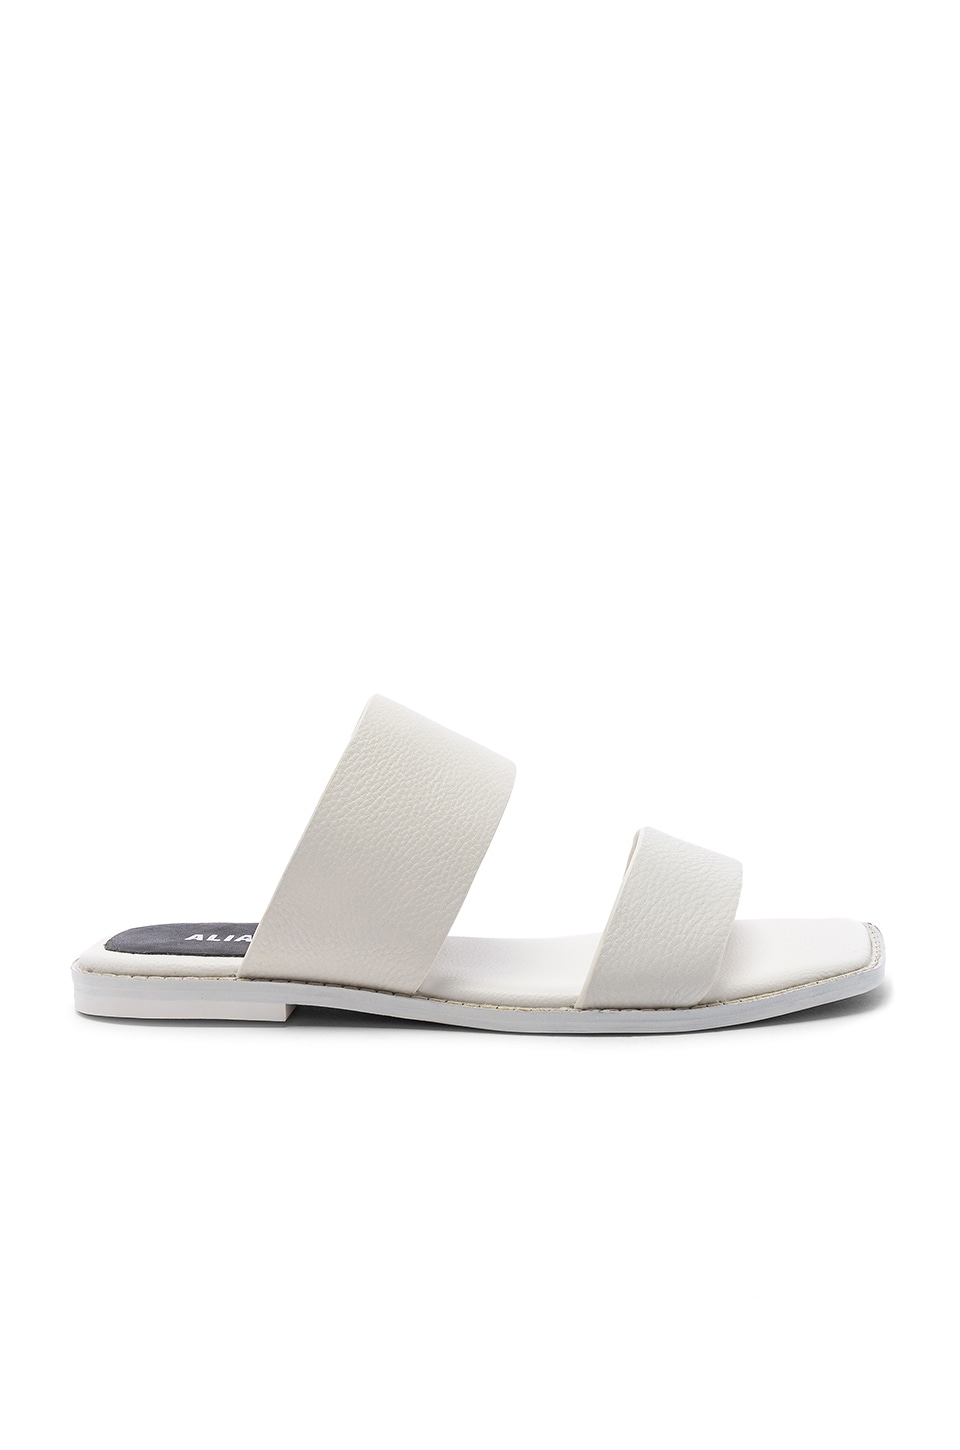 Alias Mae Tula Slide in White Leather